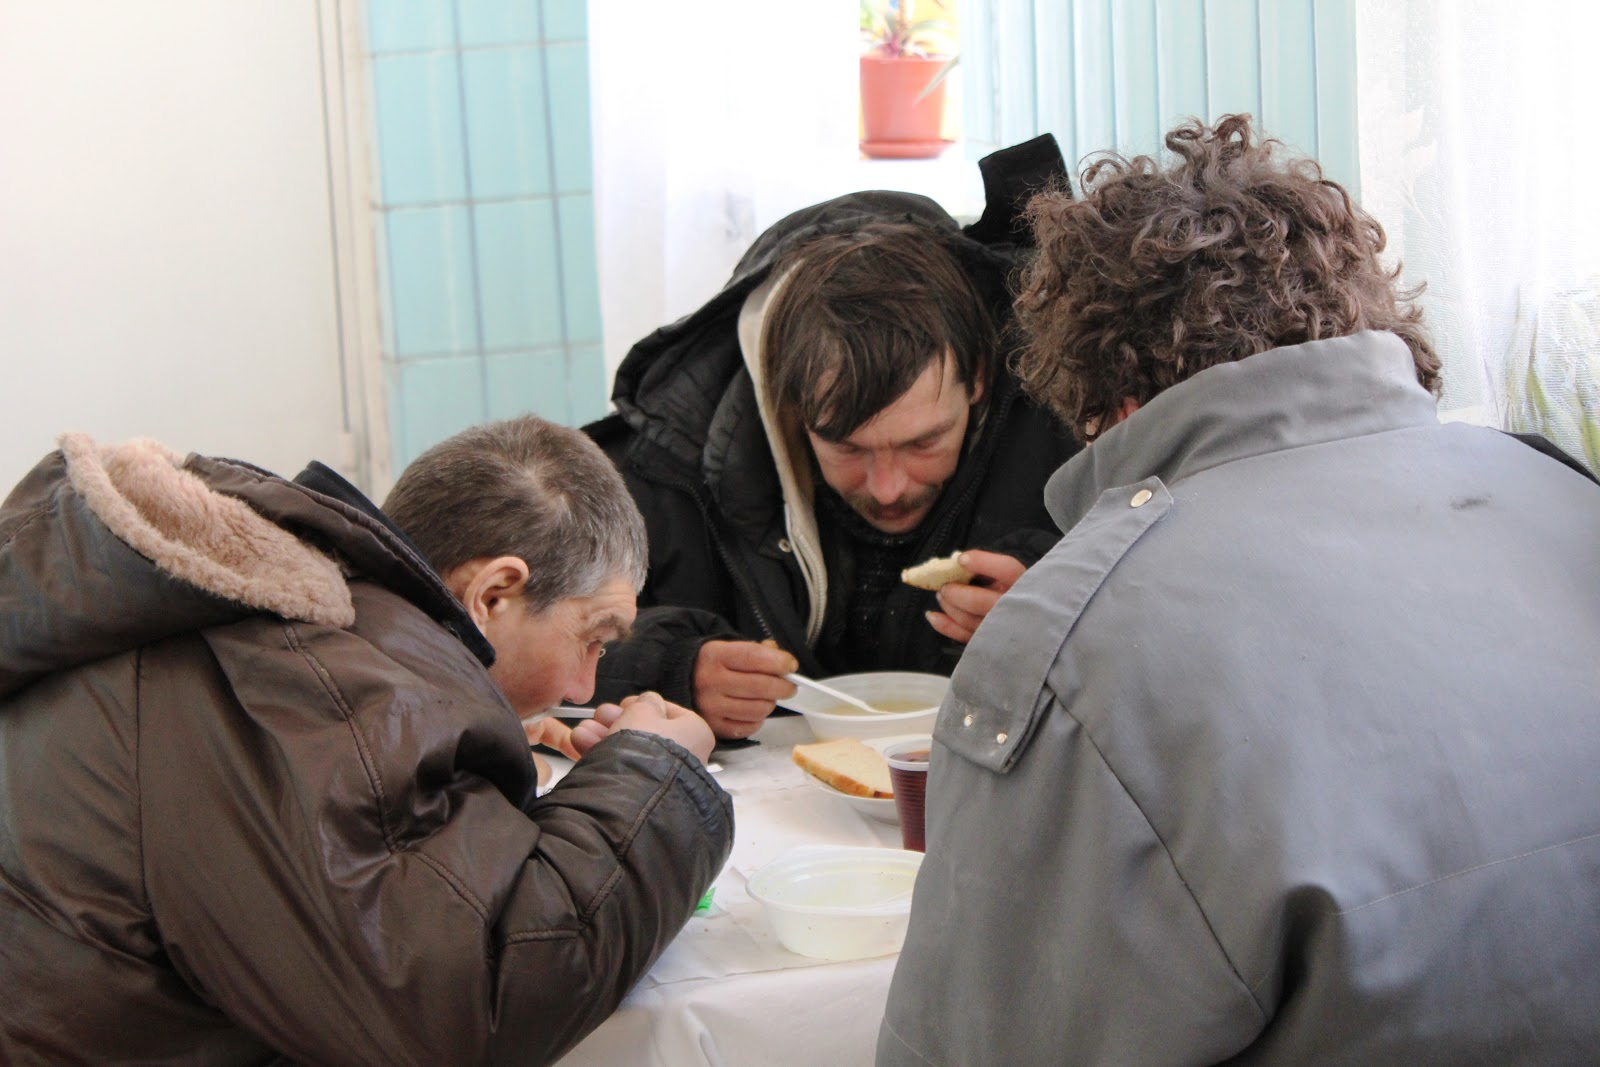 photo essay on our red cross to northern ukraine yesterday homeless men enjoying a hot meal at a red cross centre in chernigiv ukraine while food and hot drinks are provided using emergency funds released by ifrc